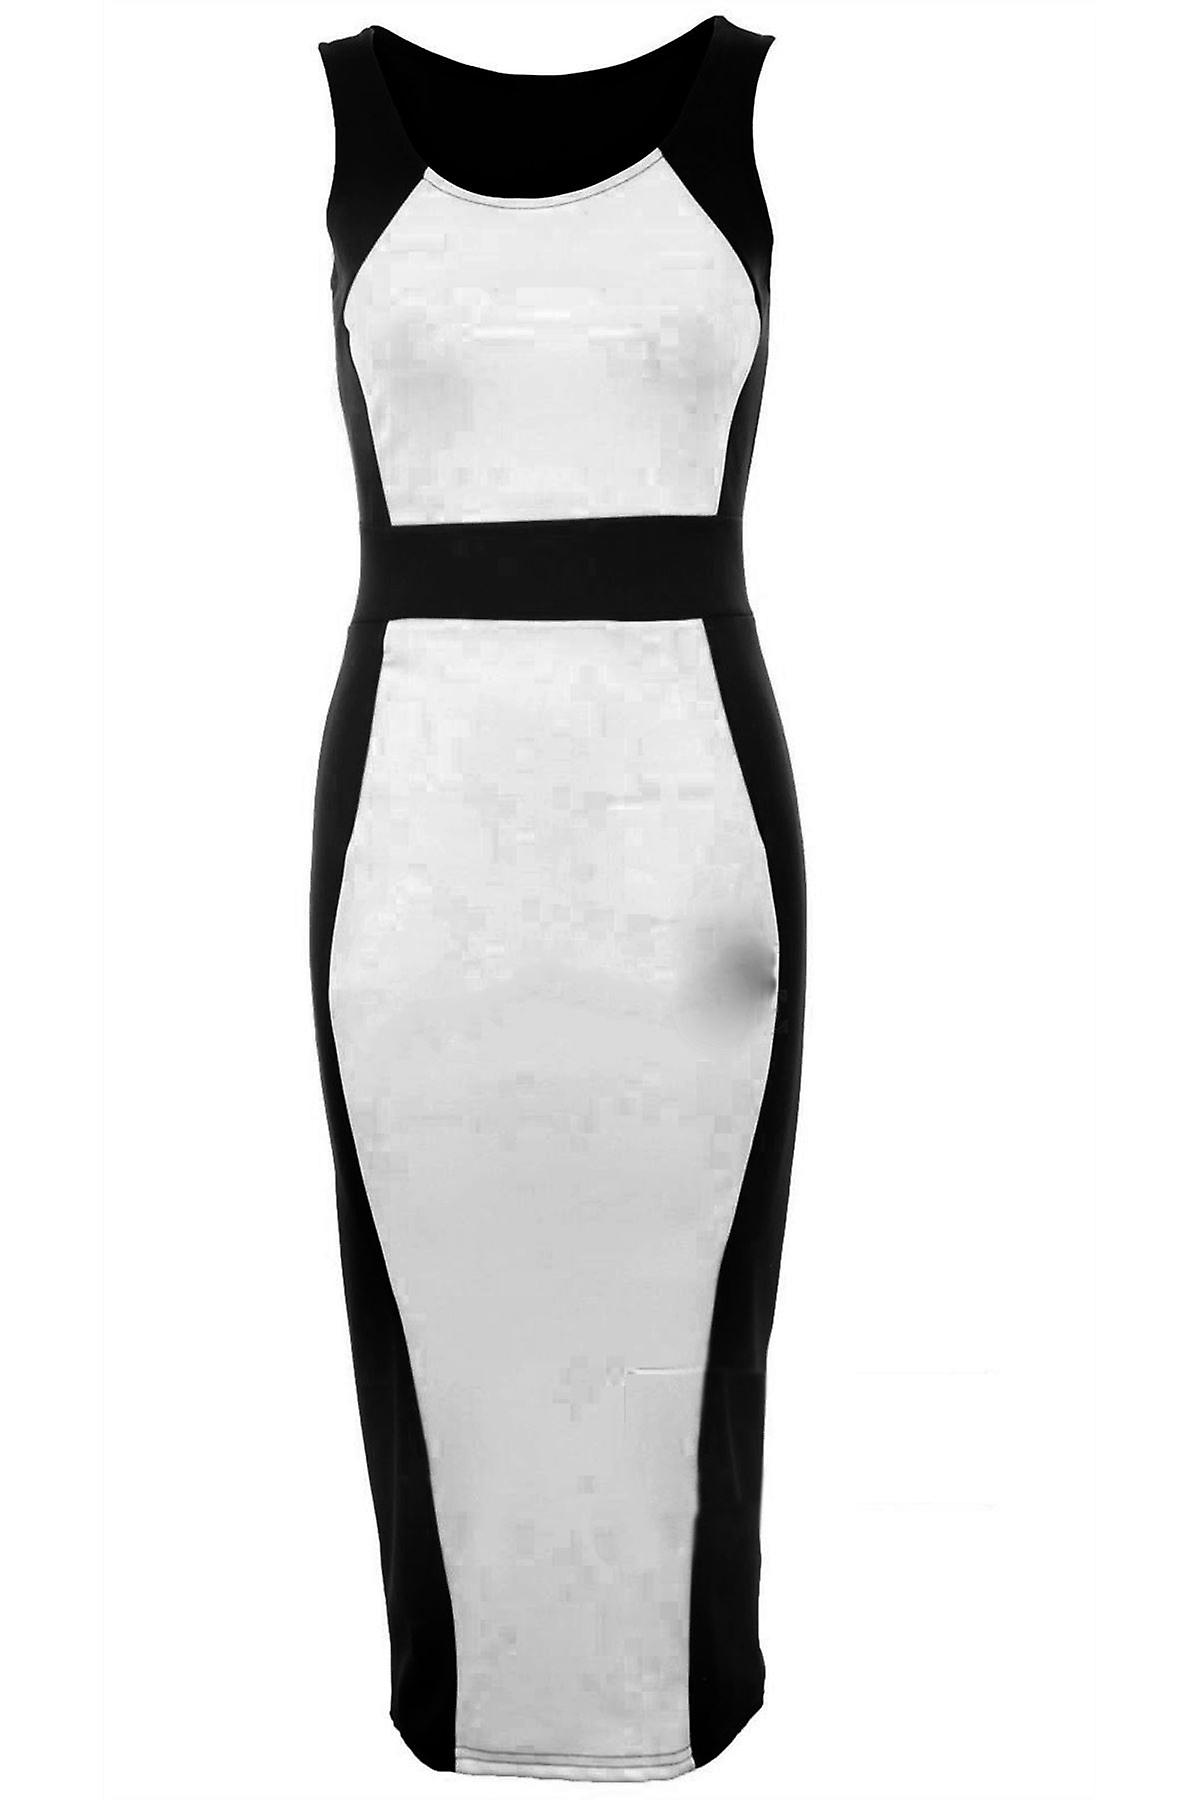 Ladies Sleeveless Contrast Long Bodycon Waist Line Women's Dress